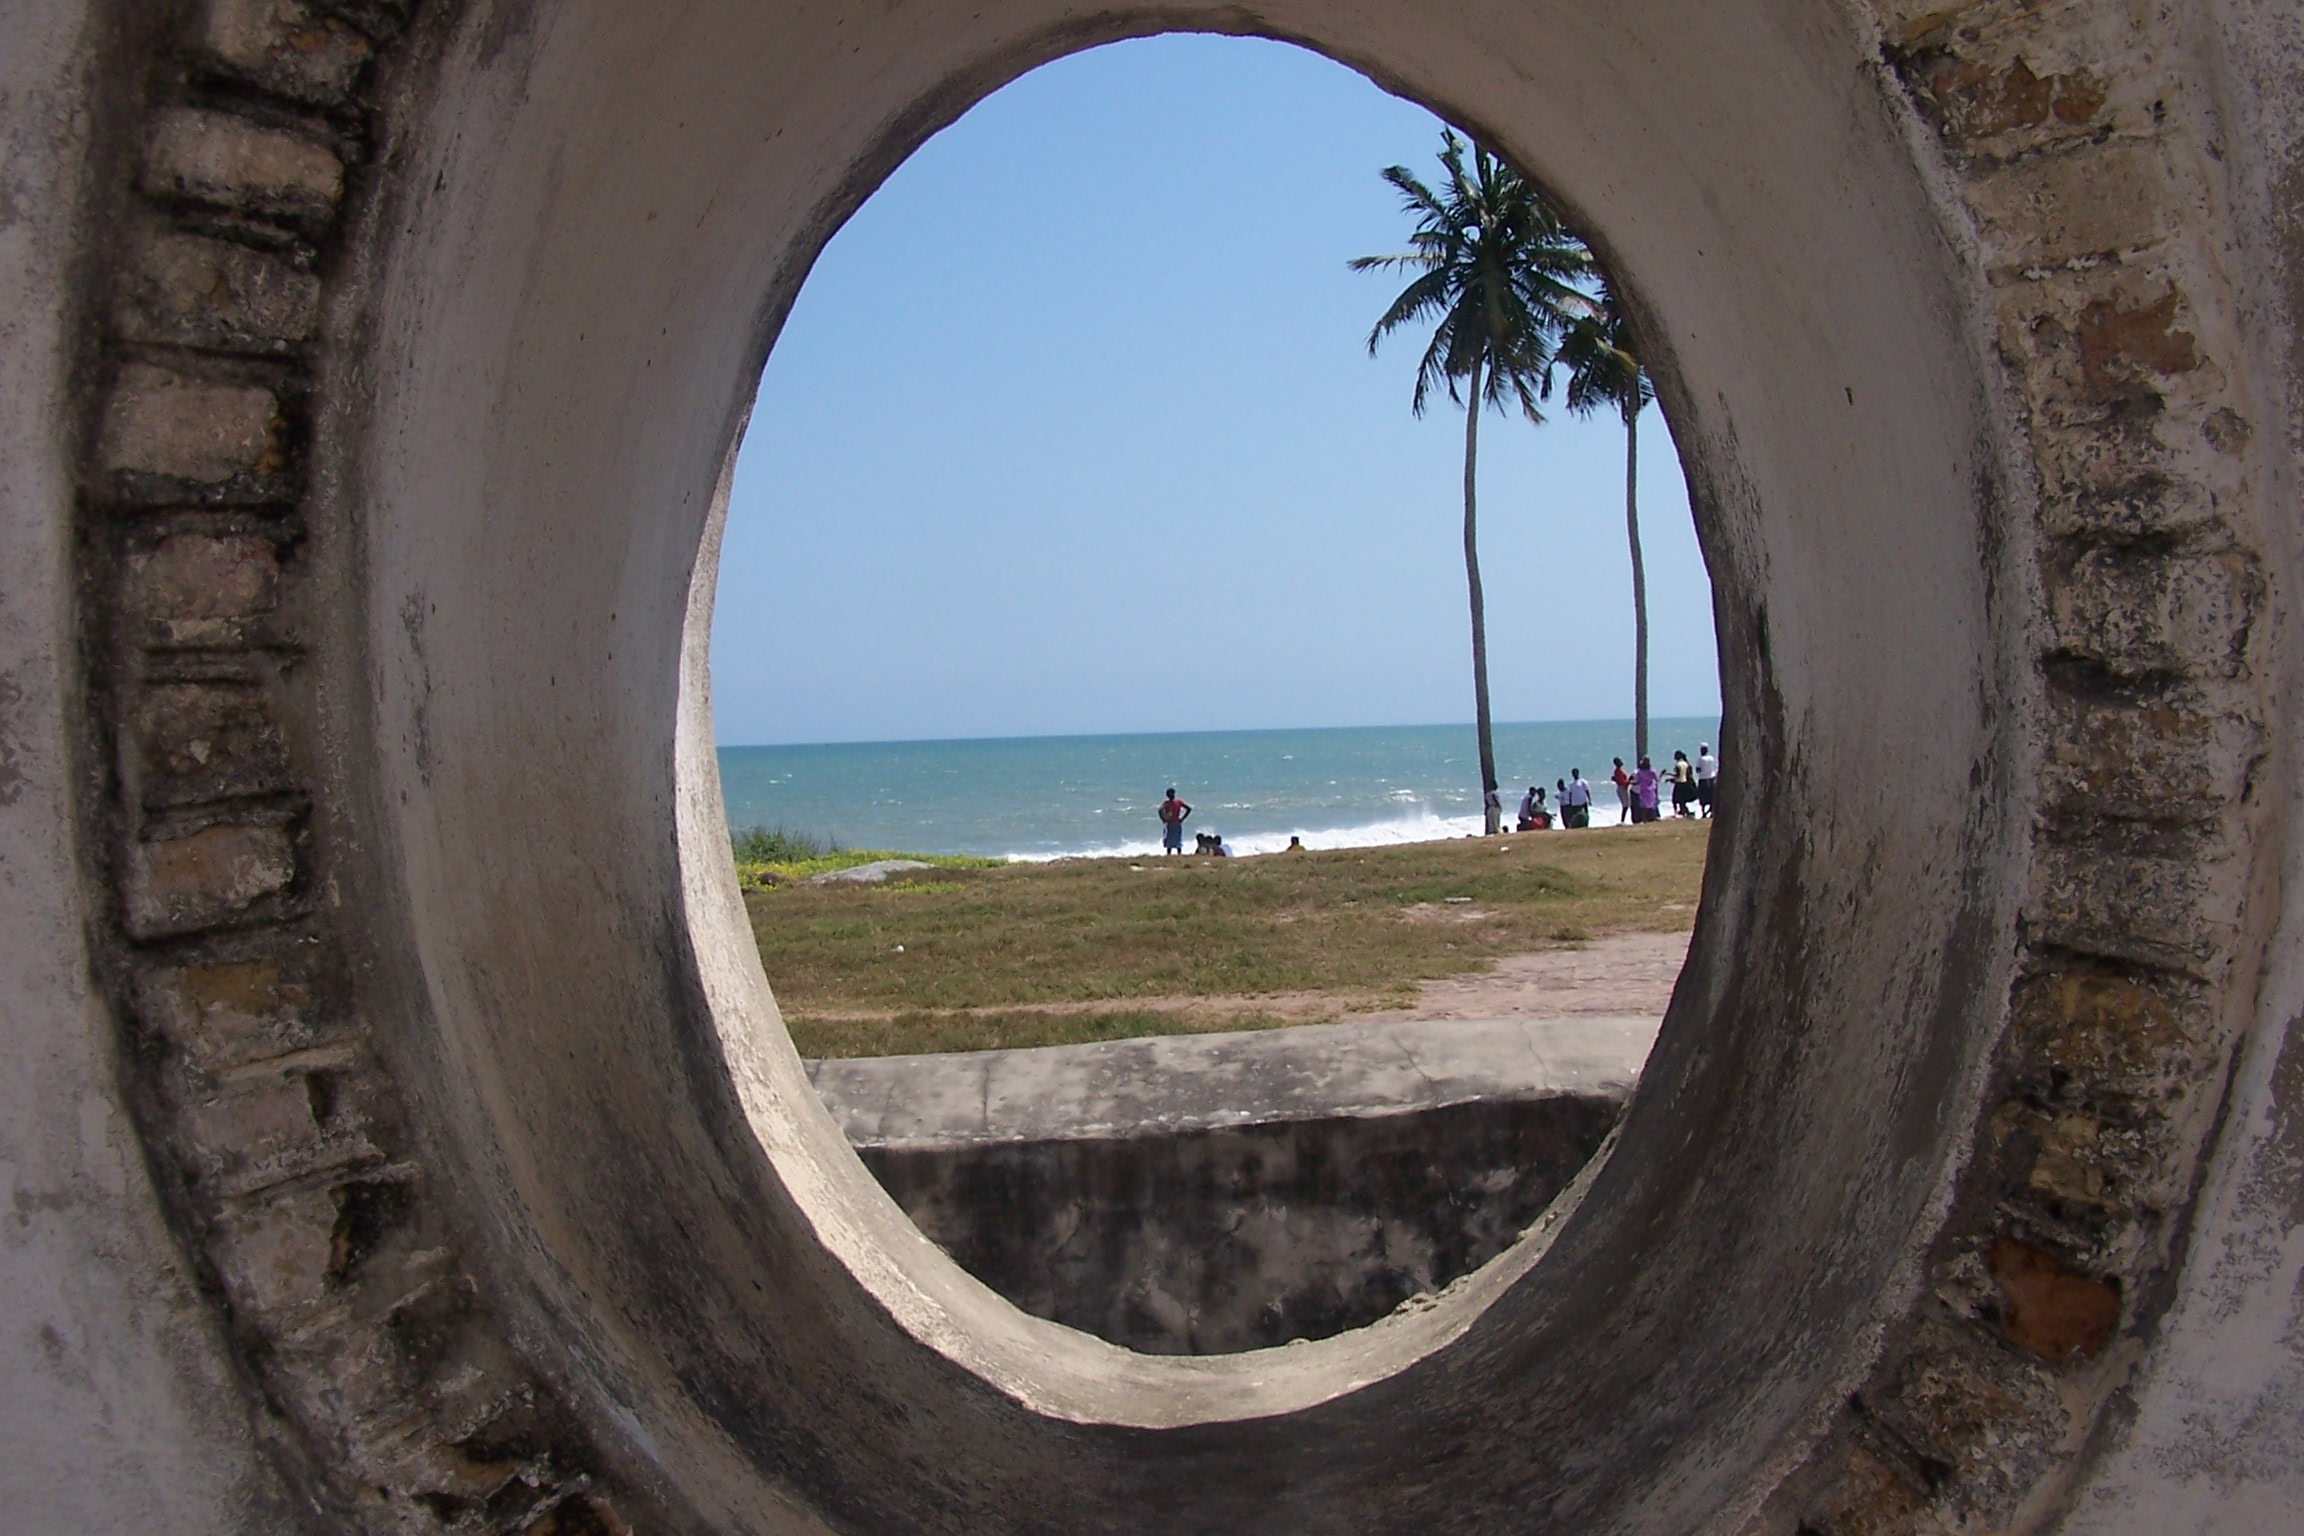 A westward view from inside Elmina Castle (Built 1482) - picture taken by Adwoa Ulzen 2004